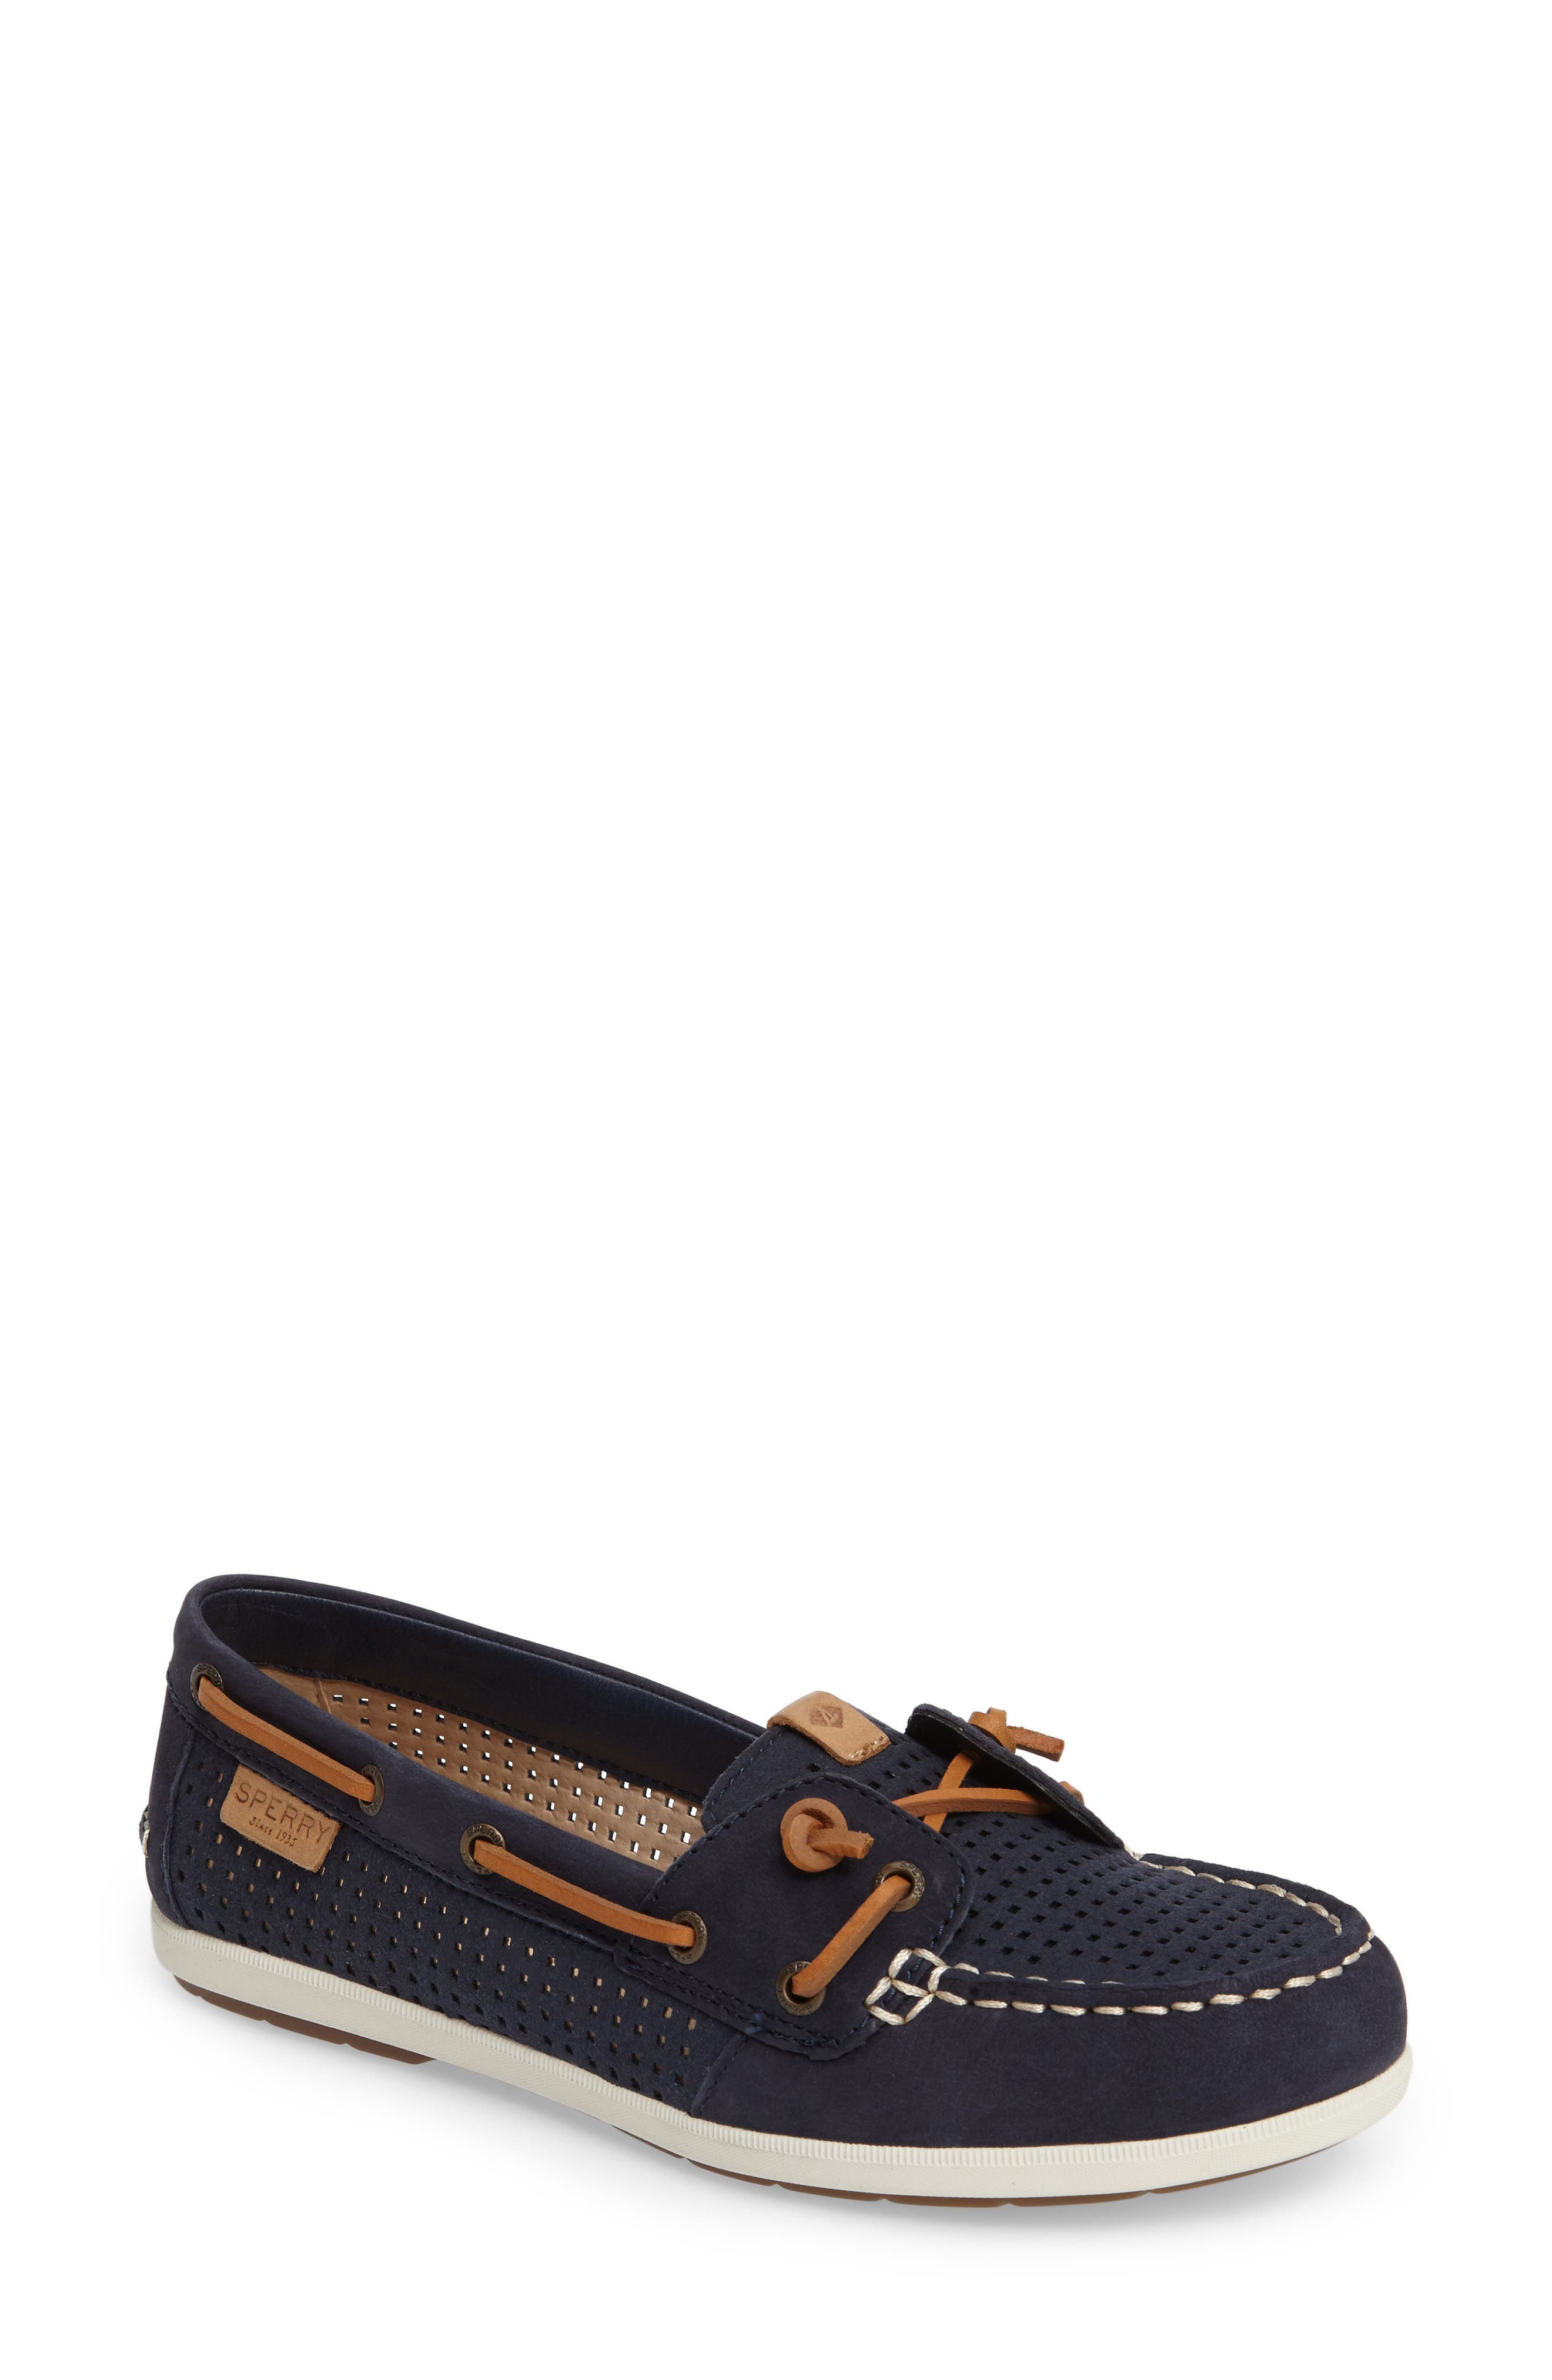 Main Image - Sperry Coil Ivy Boat Shoe (Women)